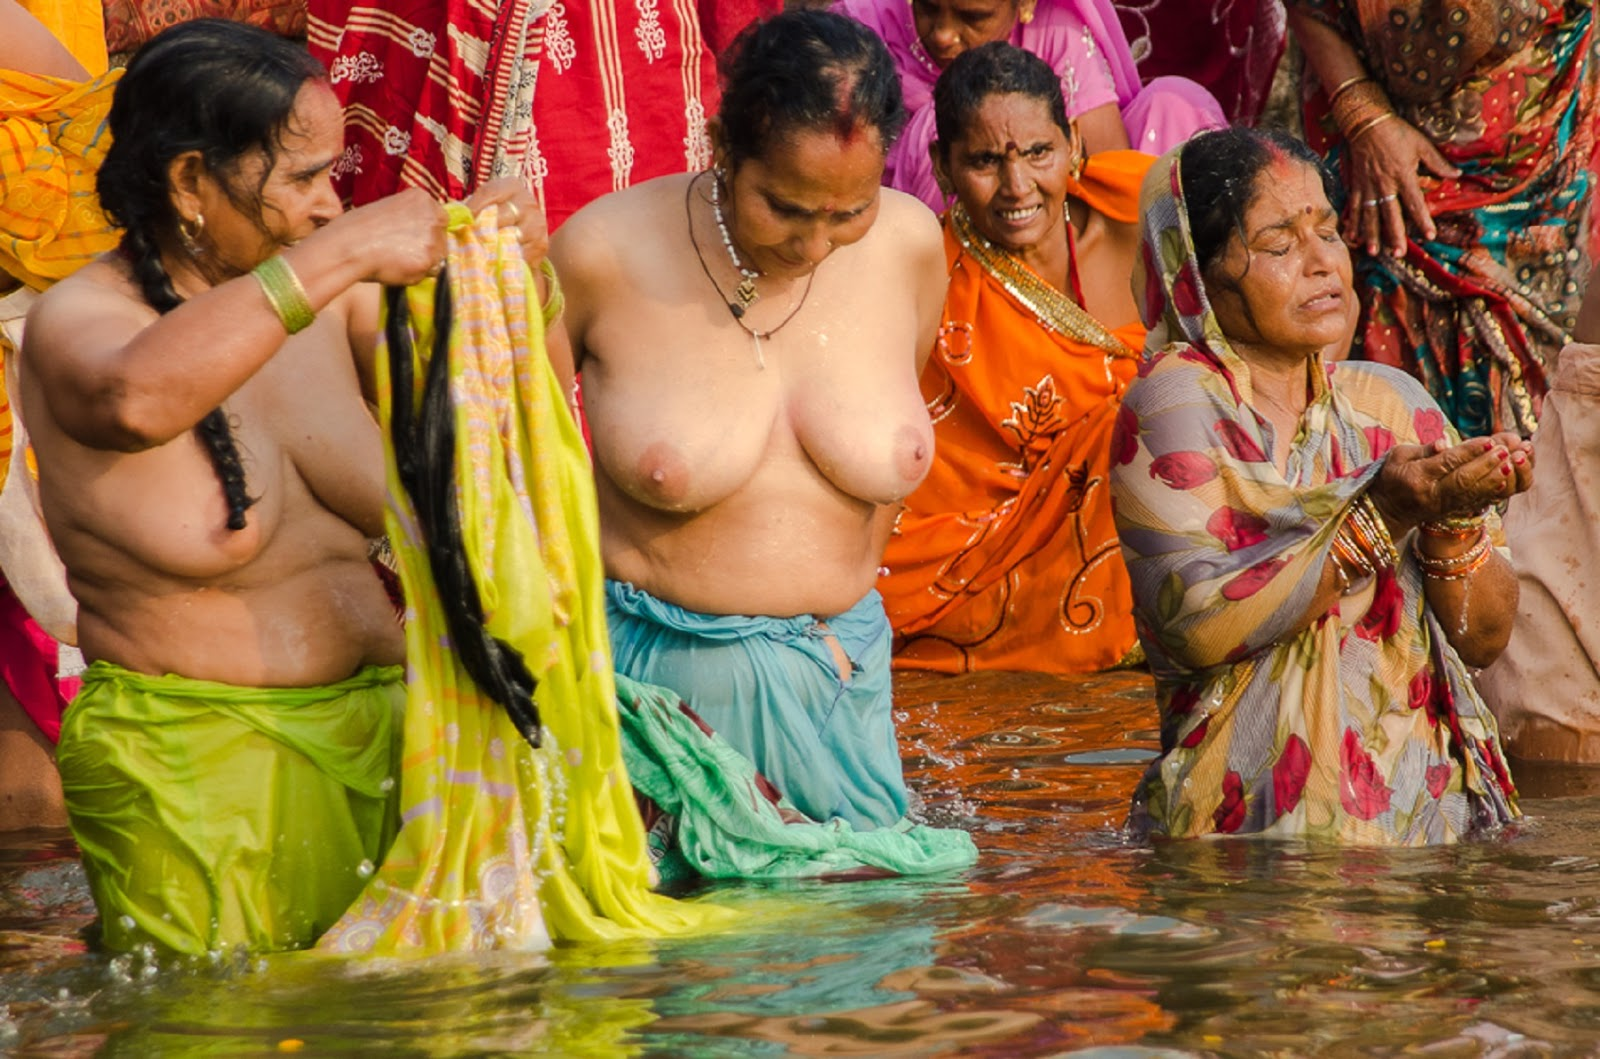 Public Nudity Project Ganges River, India-9418